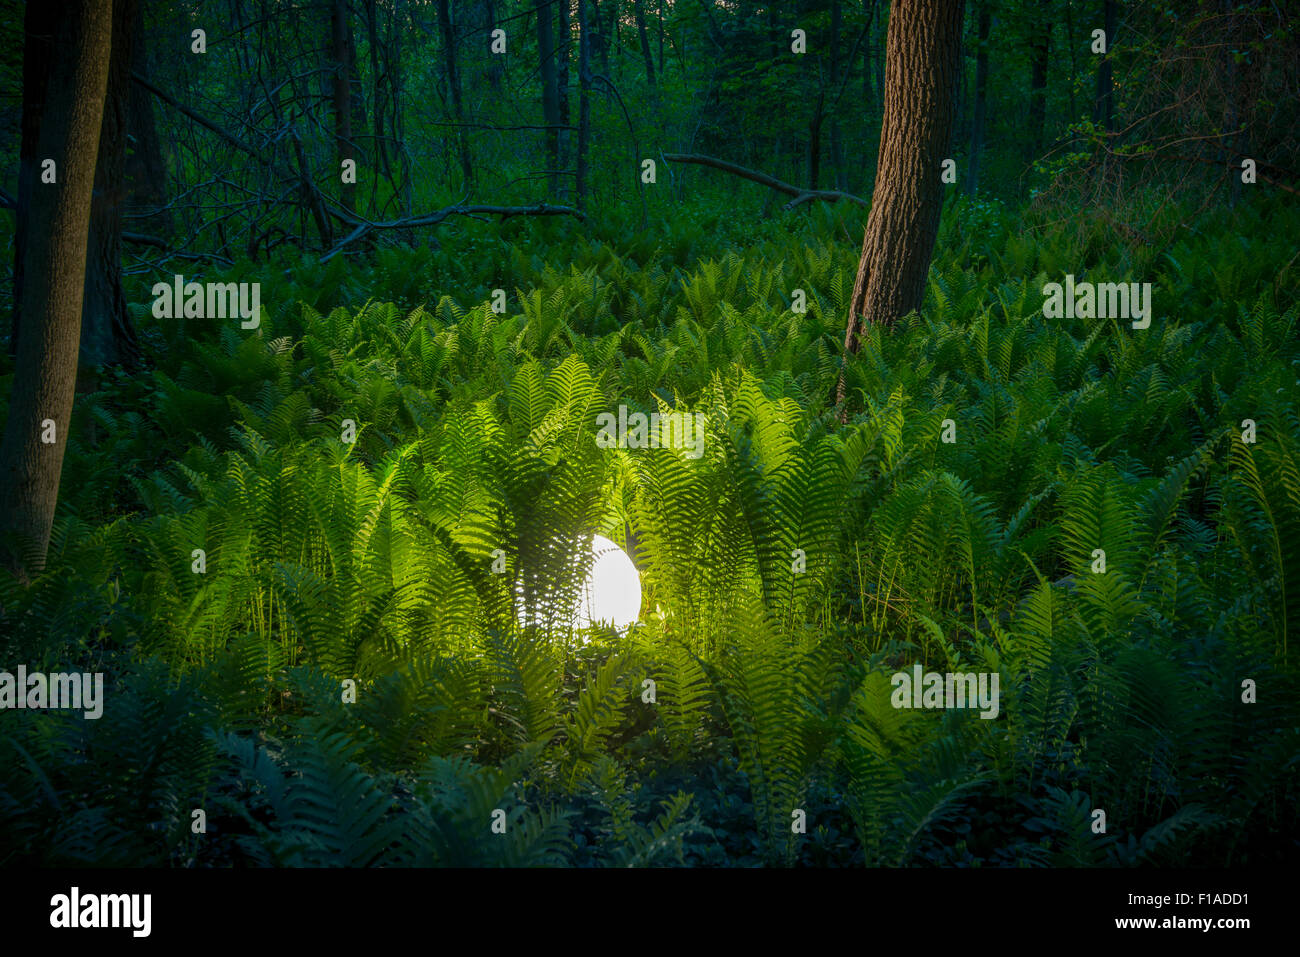 Glowing Orb In Fern Forest - Stock Image